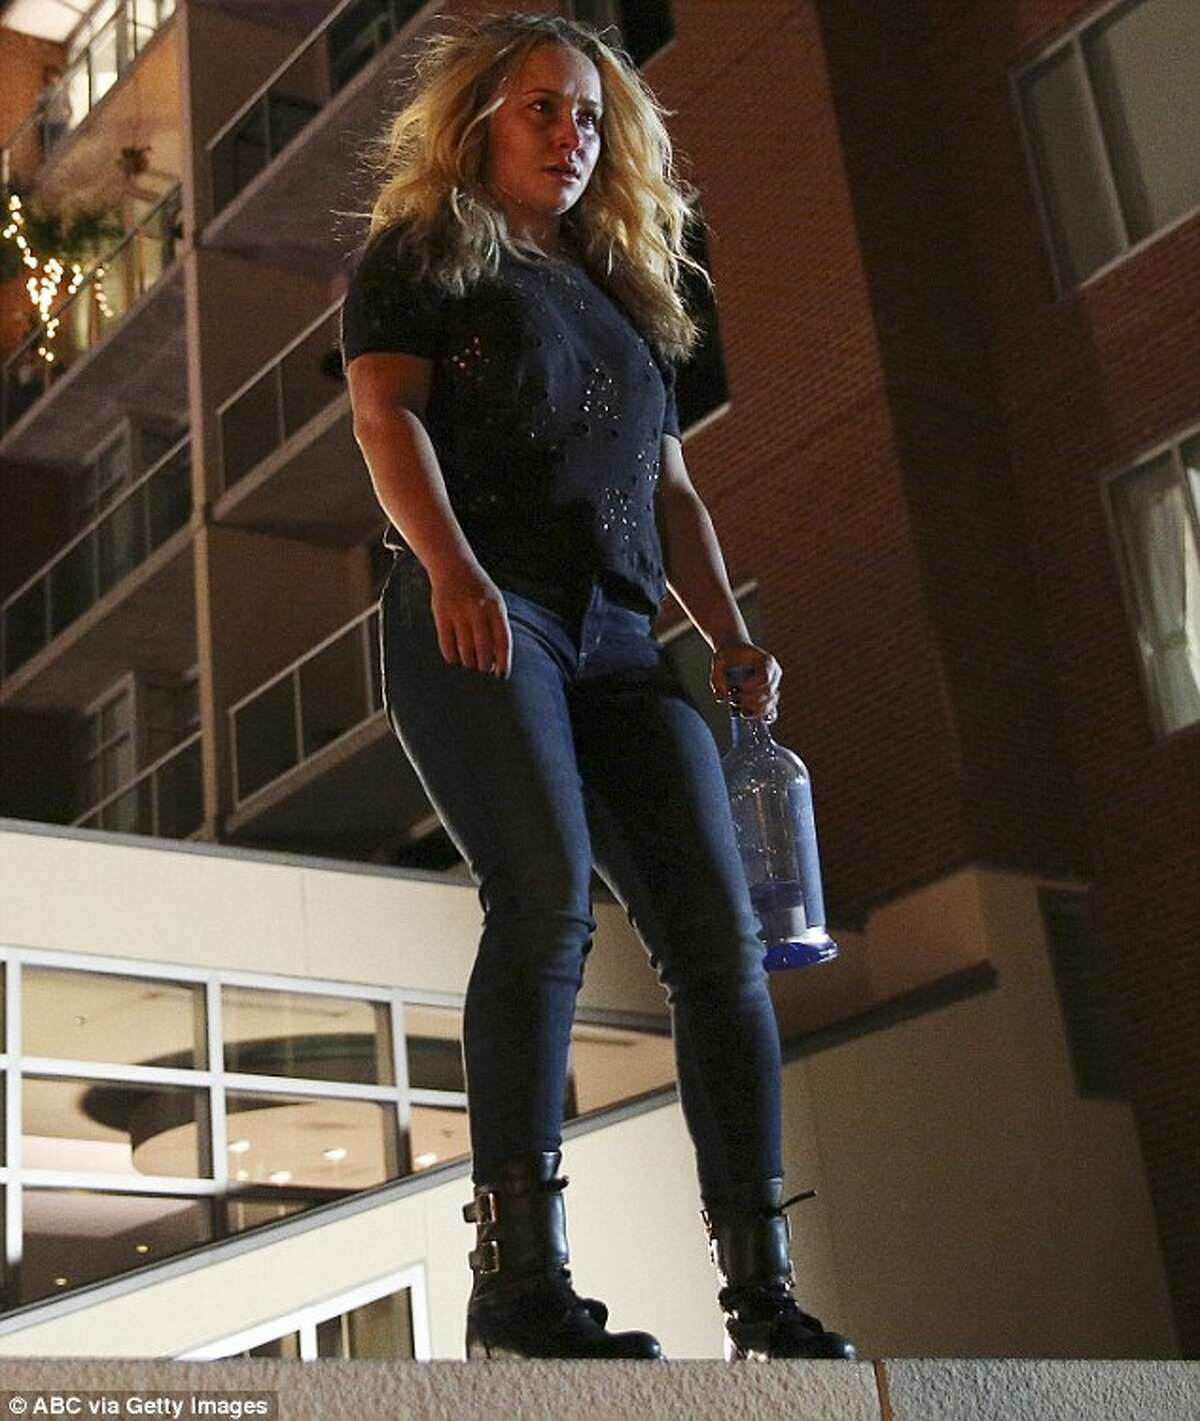 HAYDEN PANETTIERE (Nashville) - The cancelled-and-rescued musical drama may have seen better days, but the always stellar Panettiere continues to amaze, even as she mined her own personal life to inform the character's this year.